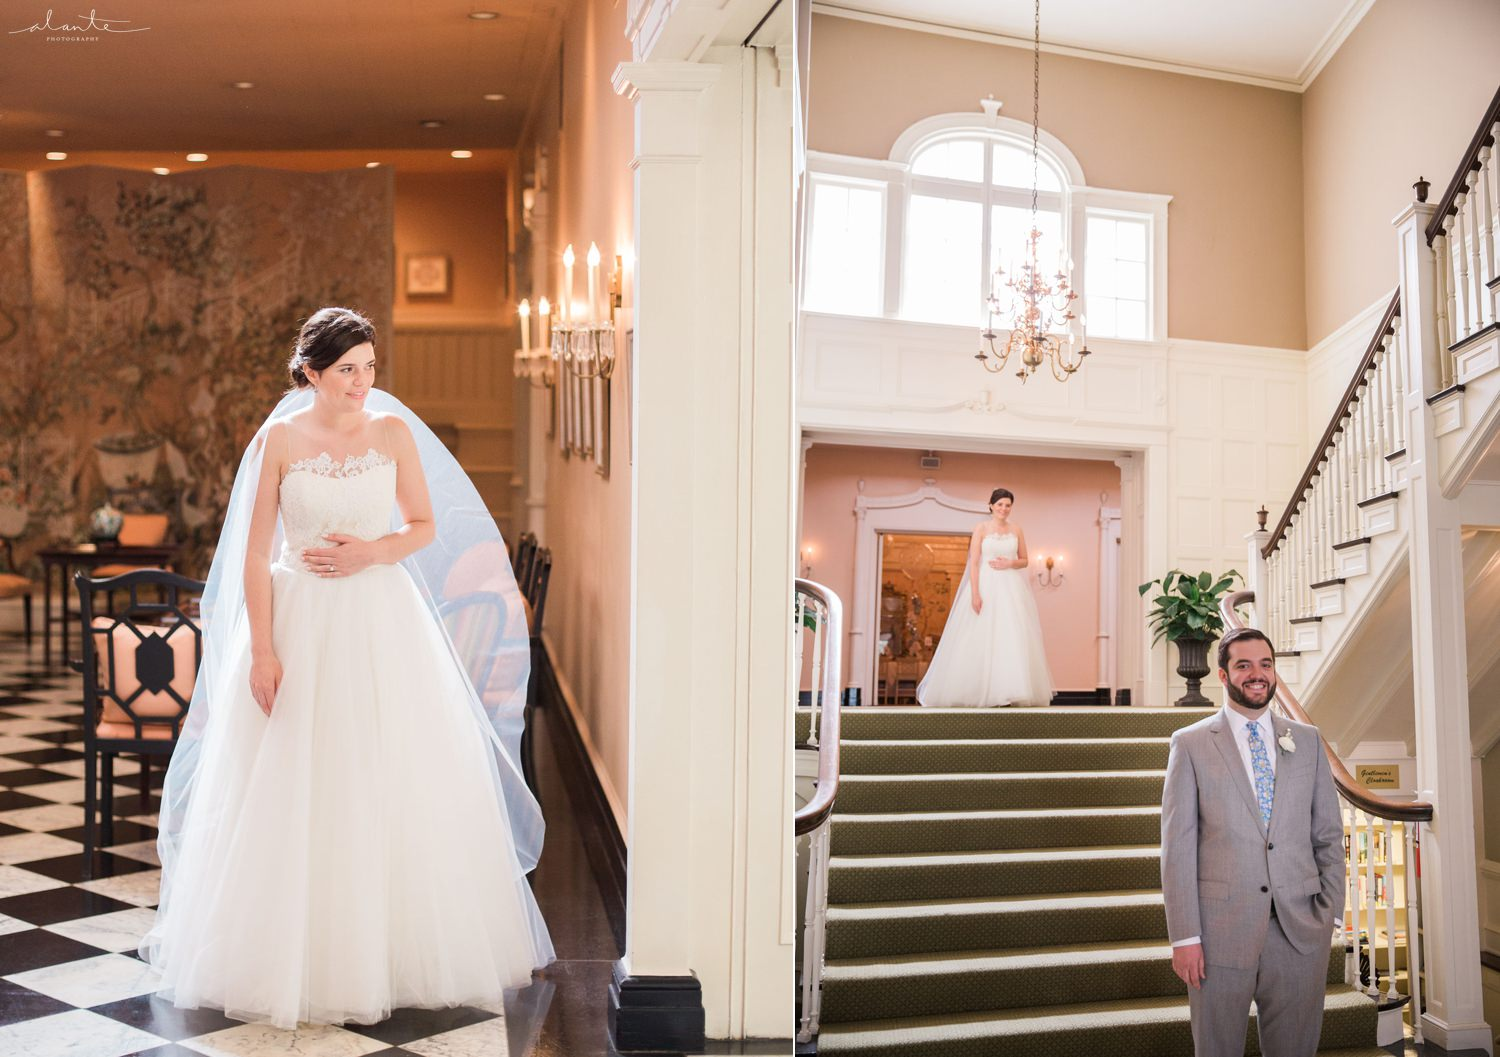 Wedding First Look at The Sunset Club by Alante Photography http://www.alantephotography.com